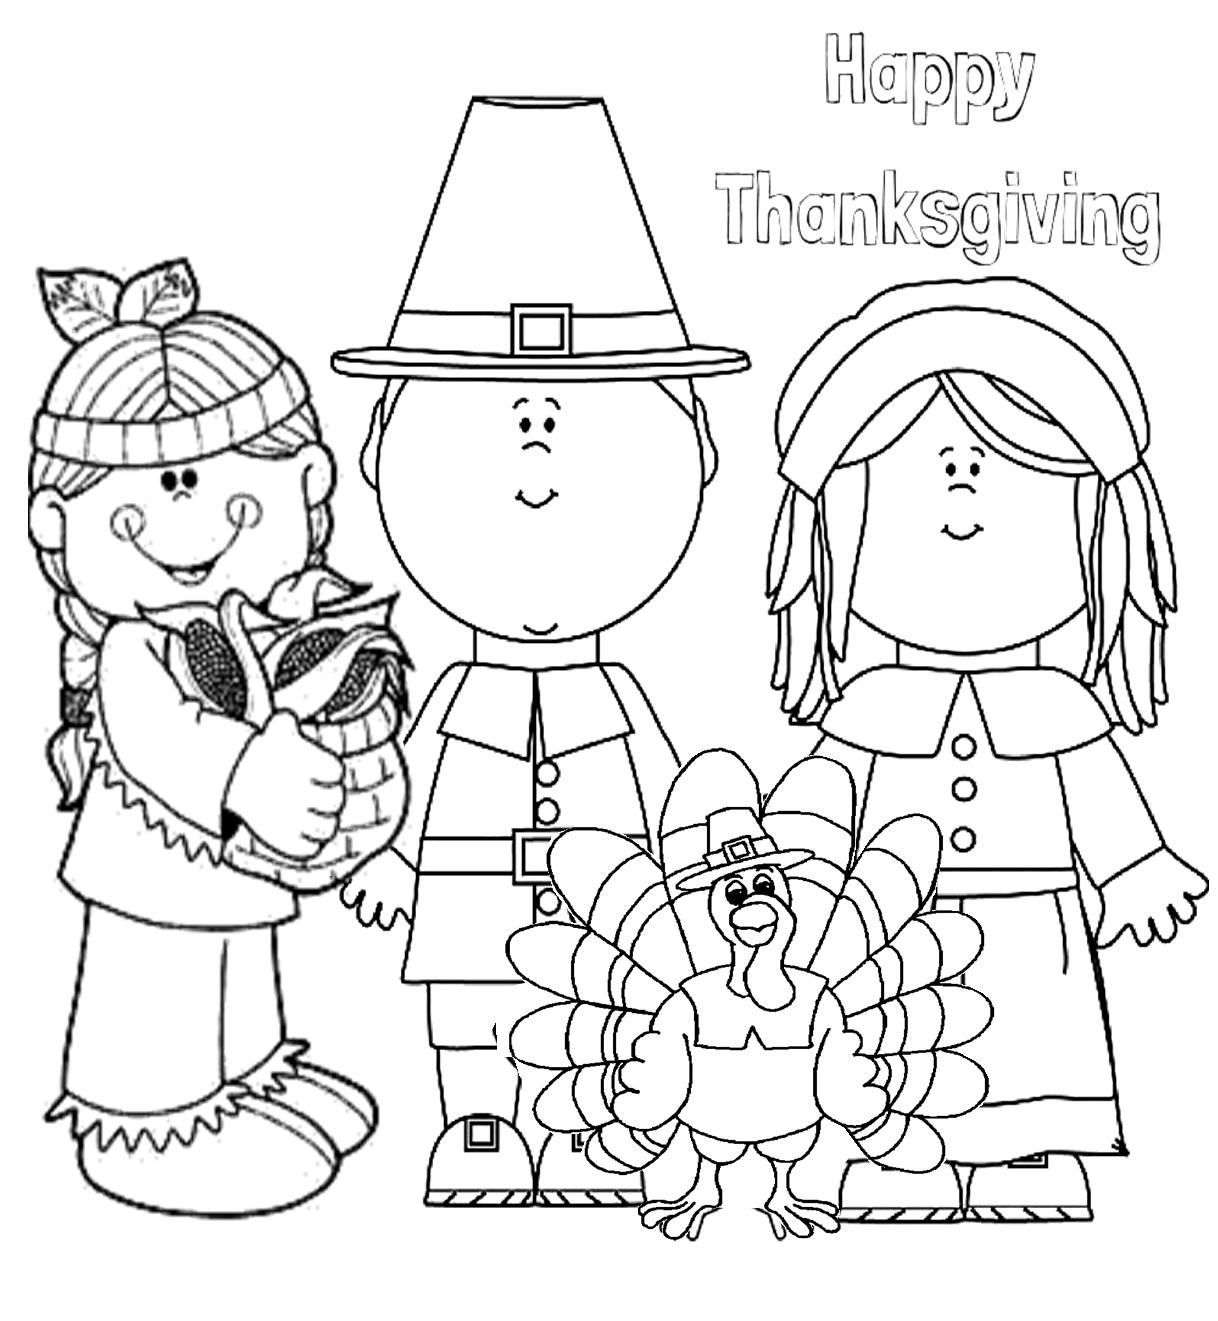 pilgrims coloring pages mayflower coloring page pilgrims